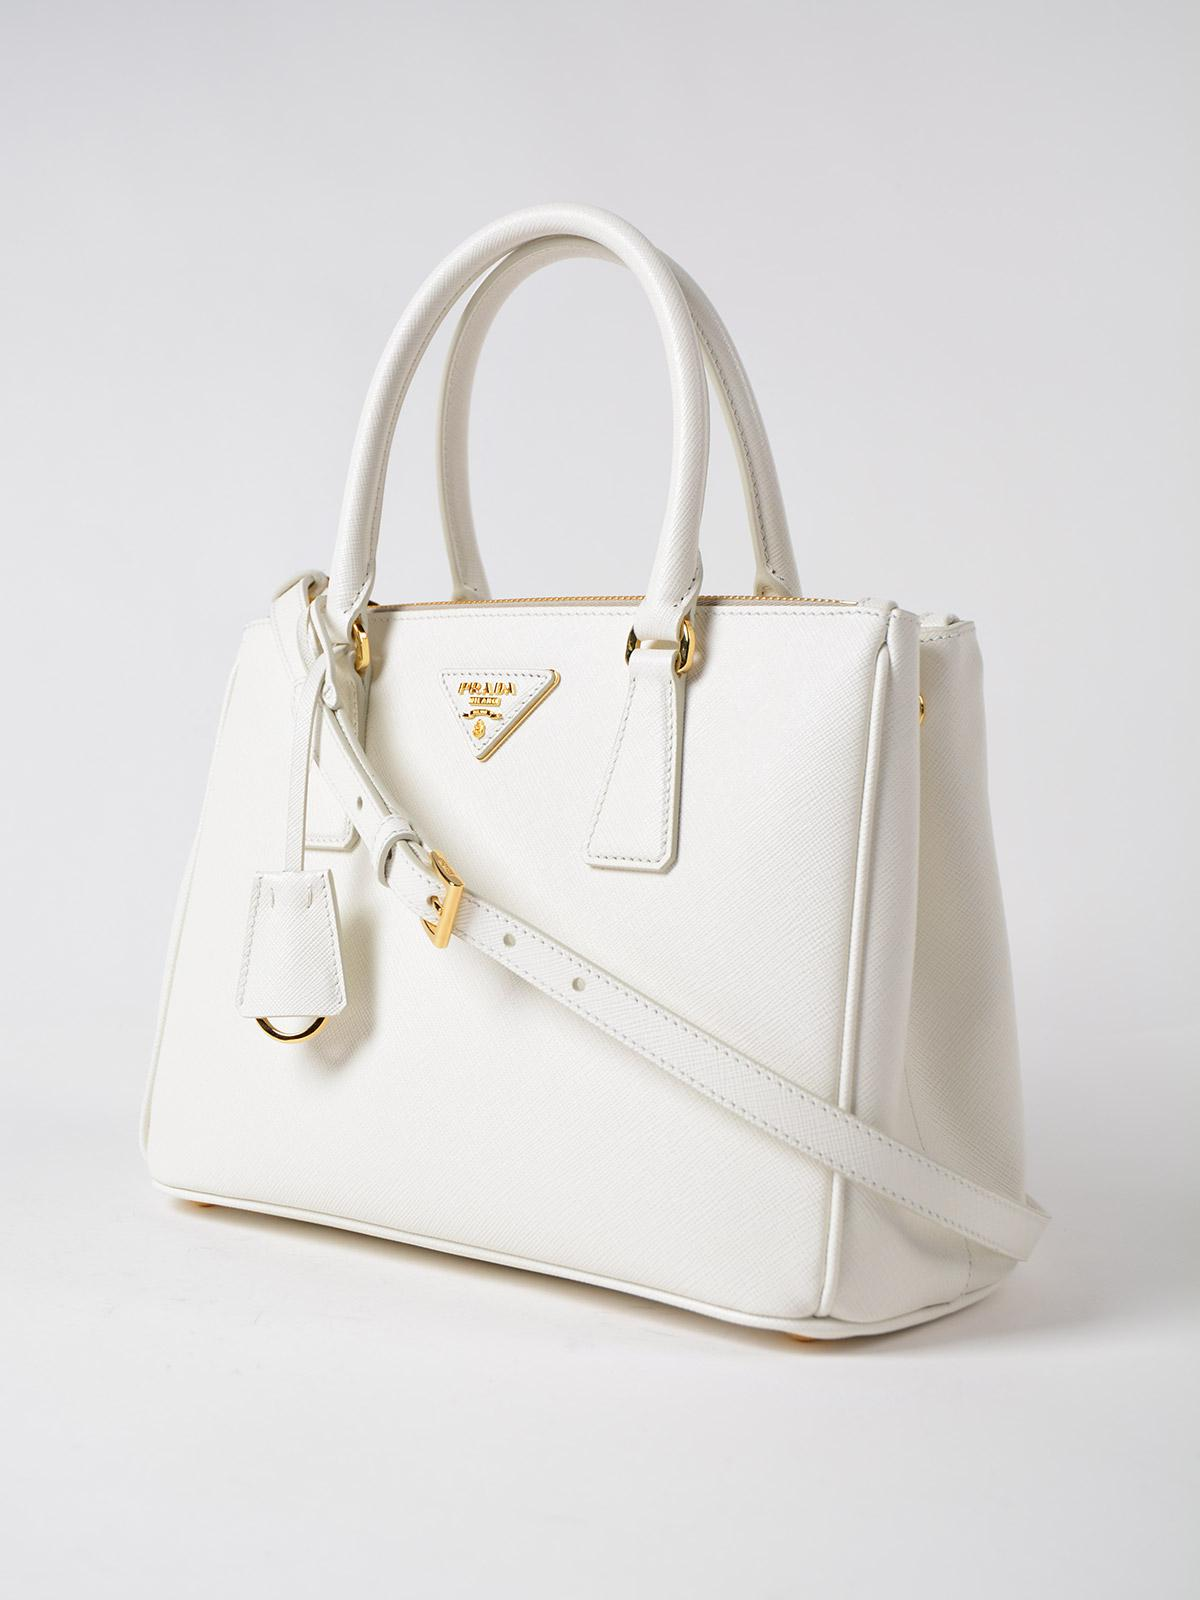 85d8d4cff75d new zealand lyst prada saffiano leather camera bag in white db5e0 d844c;  netherlands lyst prada saffiano lux galleria bag in white dc600 630f9